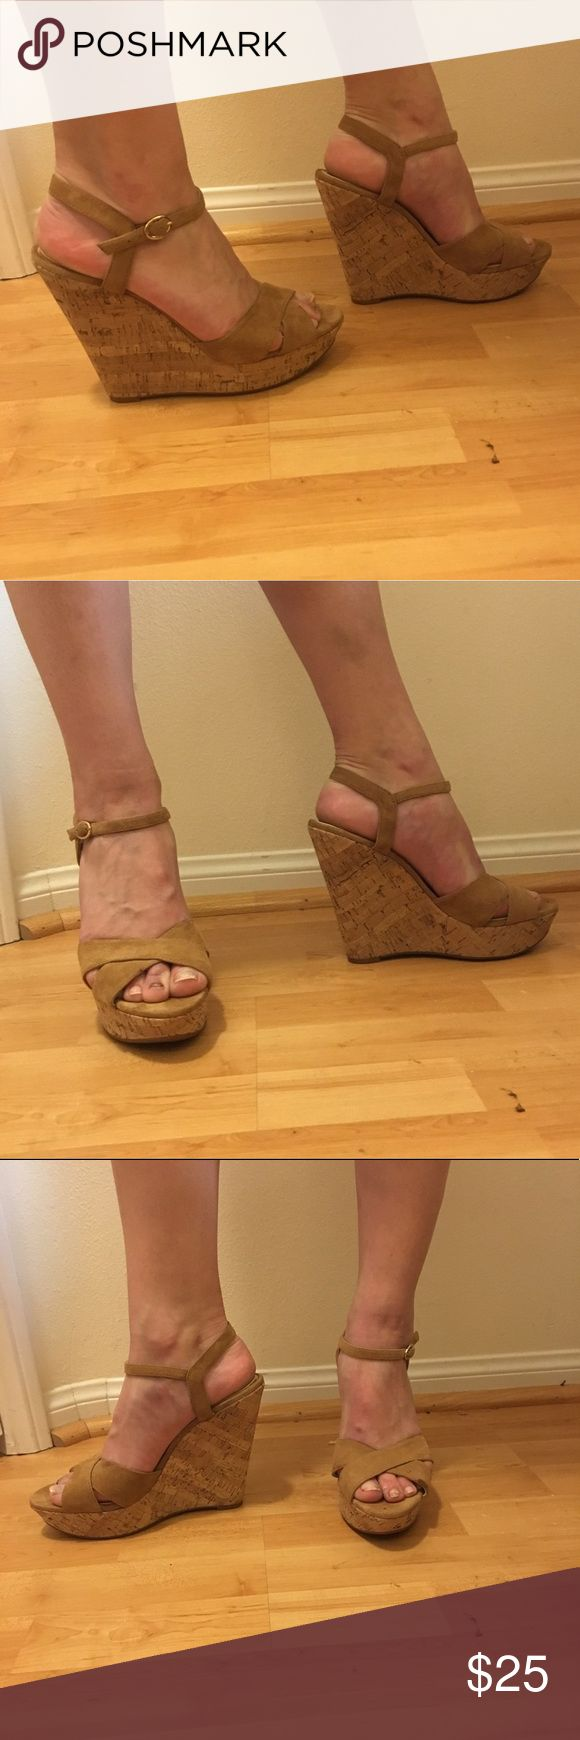 Brand new Jessica Simpson Wedges Brand new, only worn for photos Jessica Simpson Wedges. nude, cloth material straps and a cork wedge. True to size., works for wide feet as well! No TRADES! Jessica Simpson Shoes Wedges